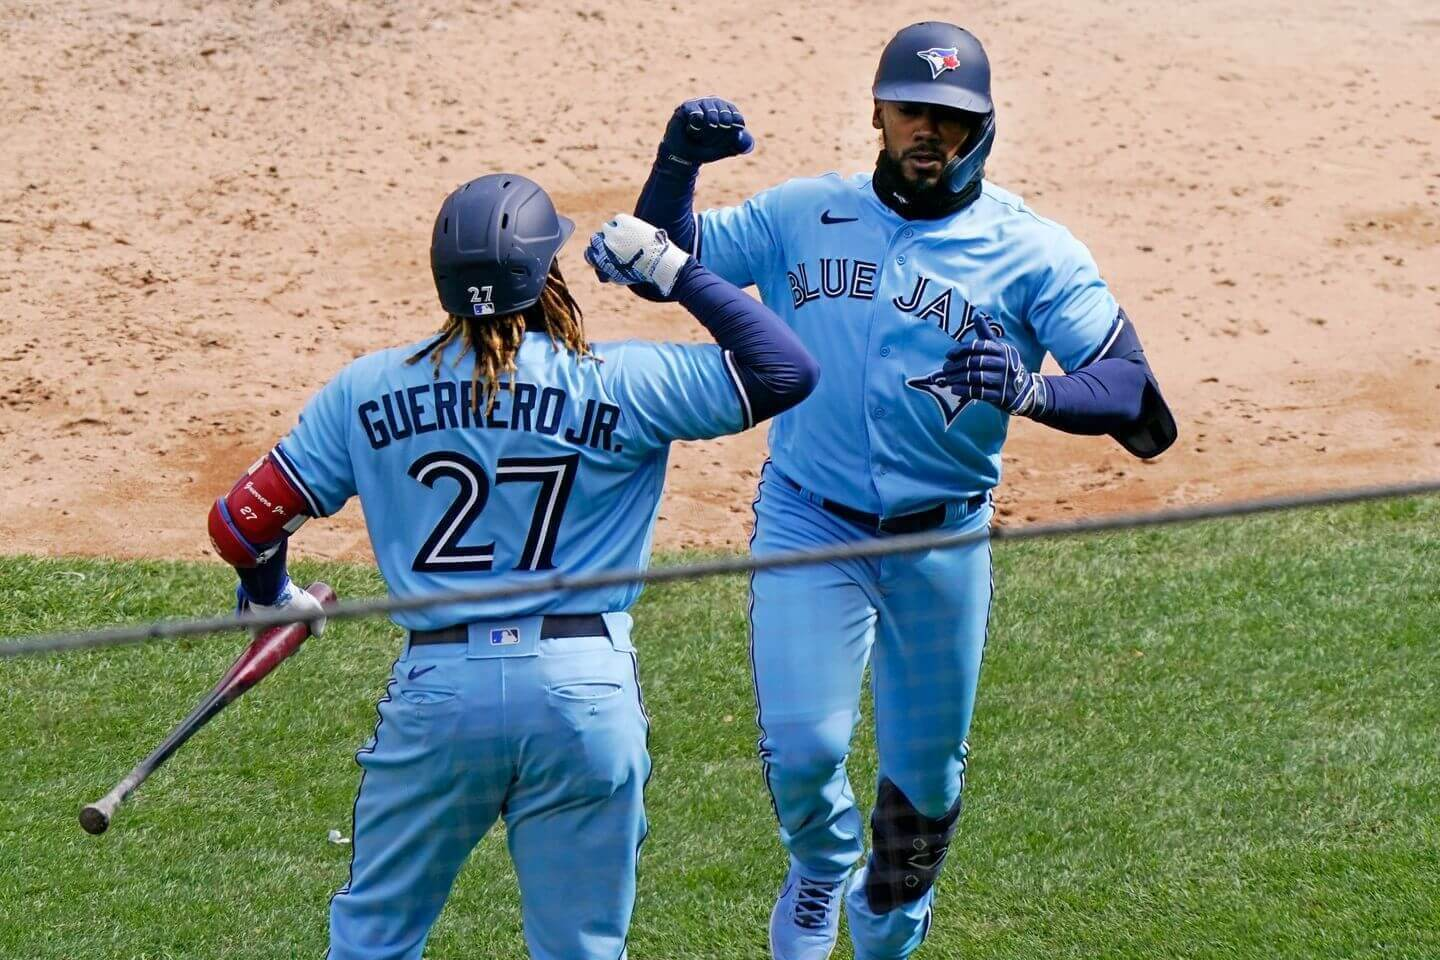 Blue Jays beat Yankees in first extra-inning game of the season